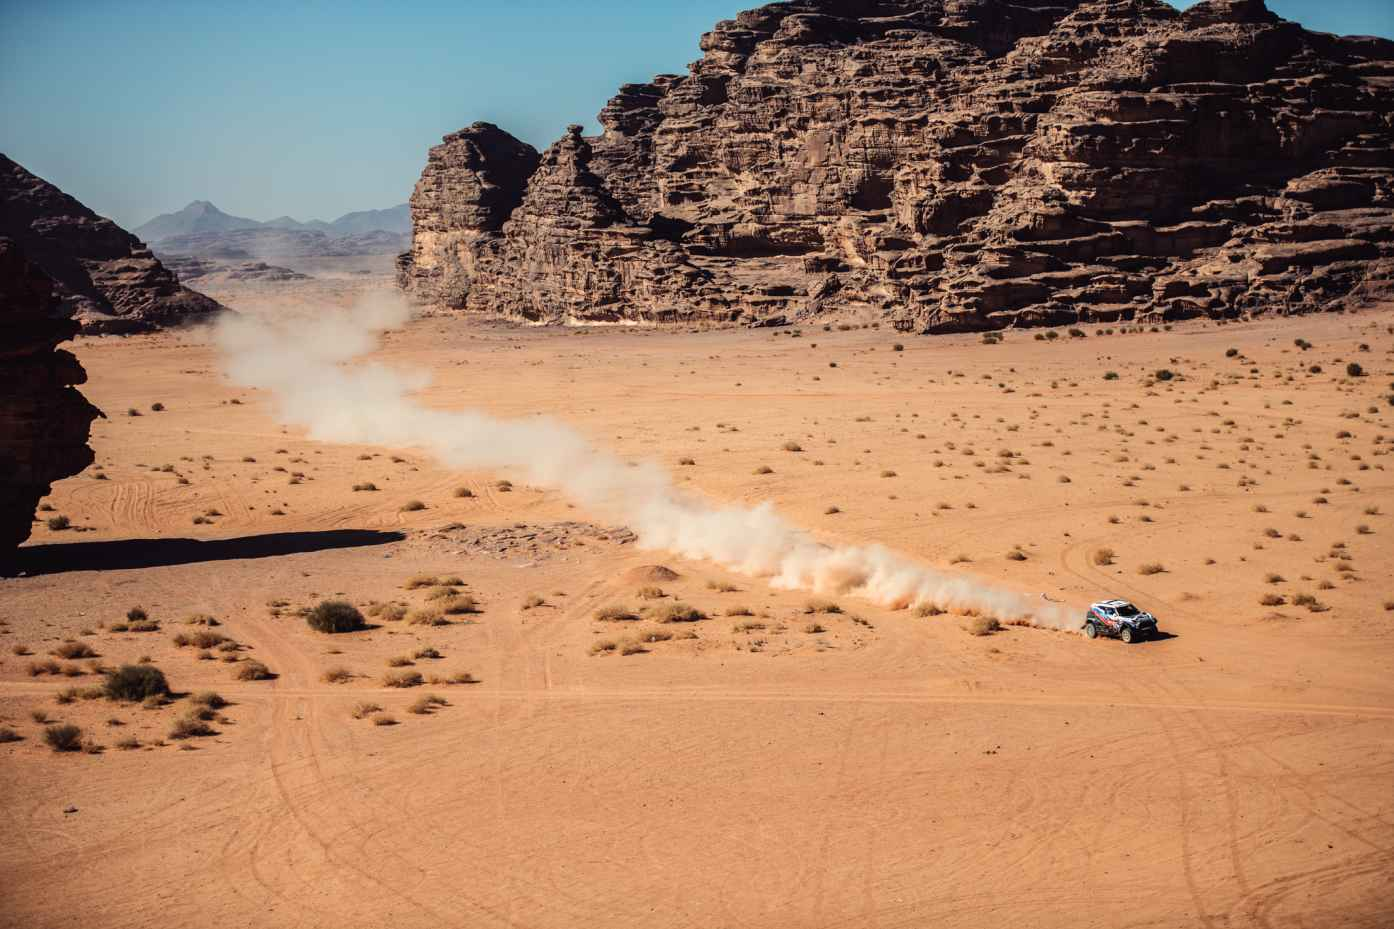 Home / 2021 / Dakar Rally / Stage 11 / #317 Vasilyev / Tsyro / M32 6377